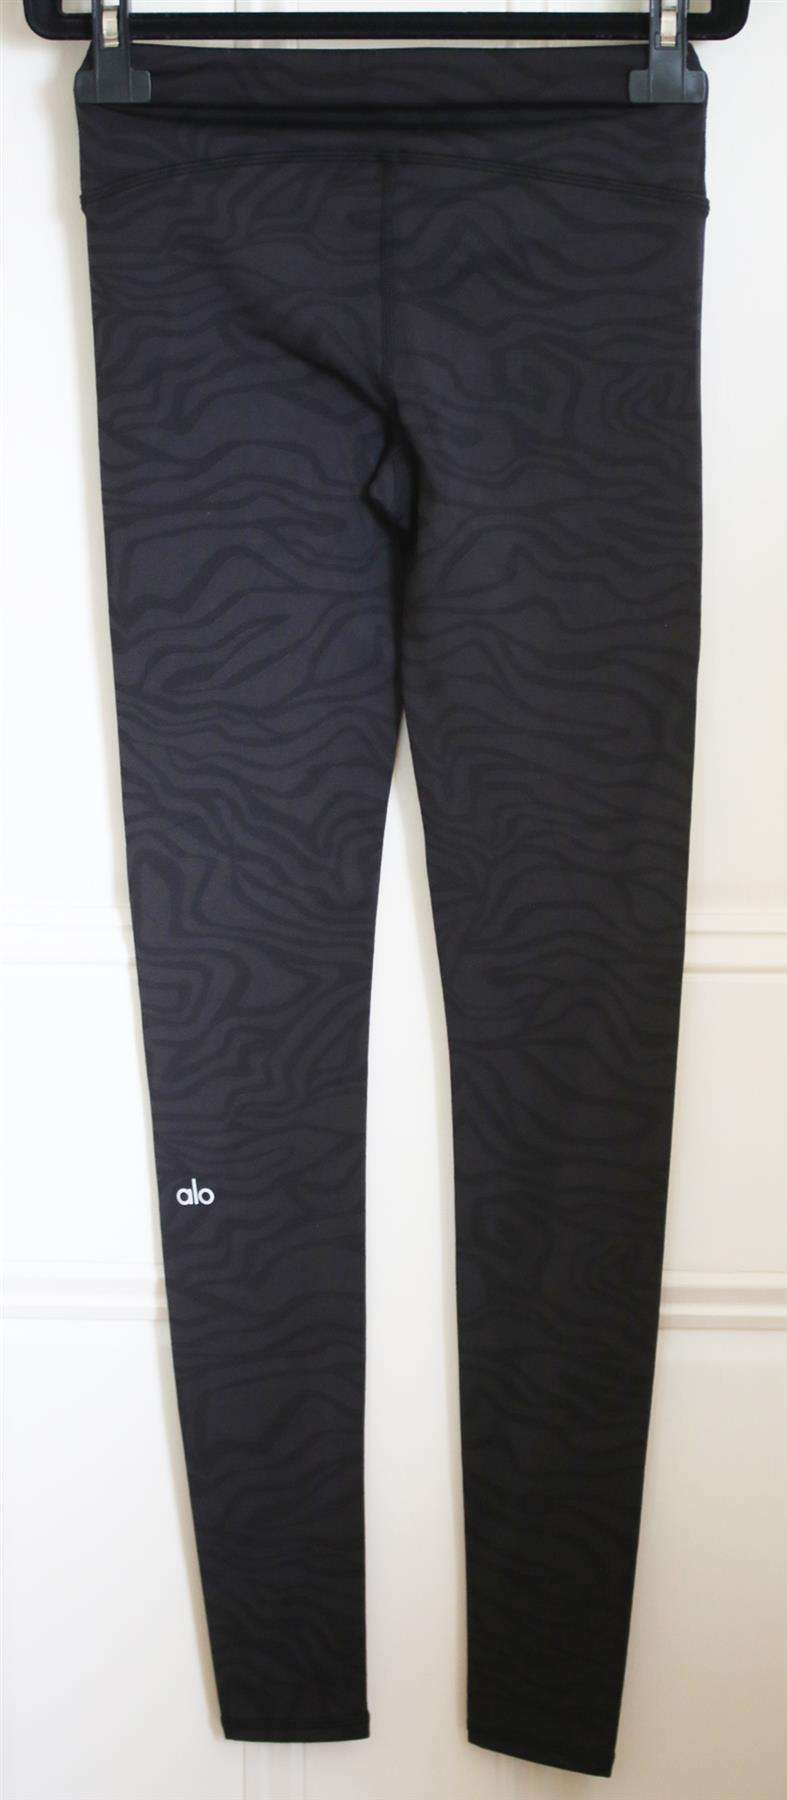 ALO YOGA AIRBRUSH PRINTED STRETCH JERSEY LEGGINGS XSMALL